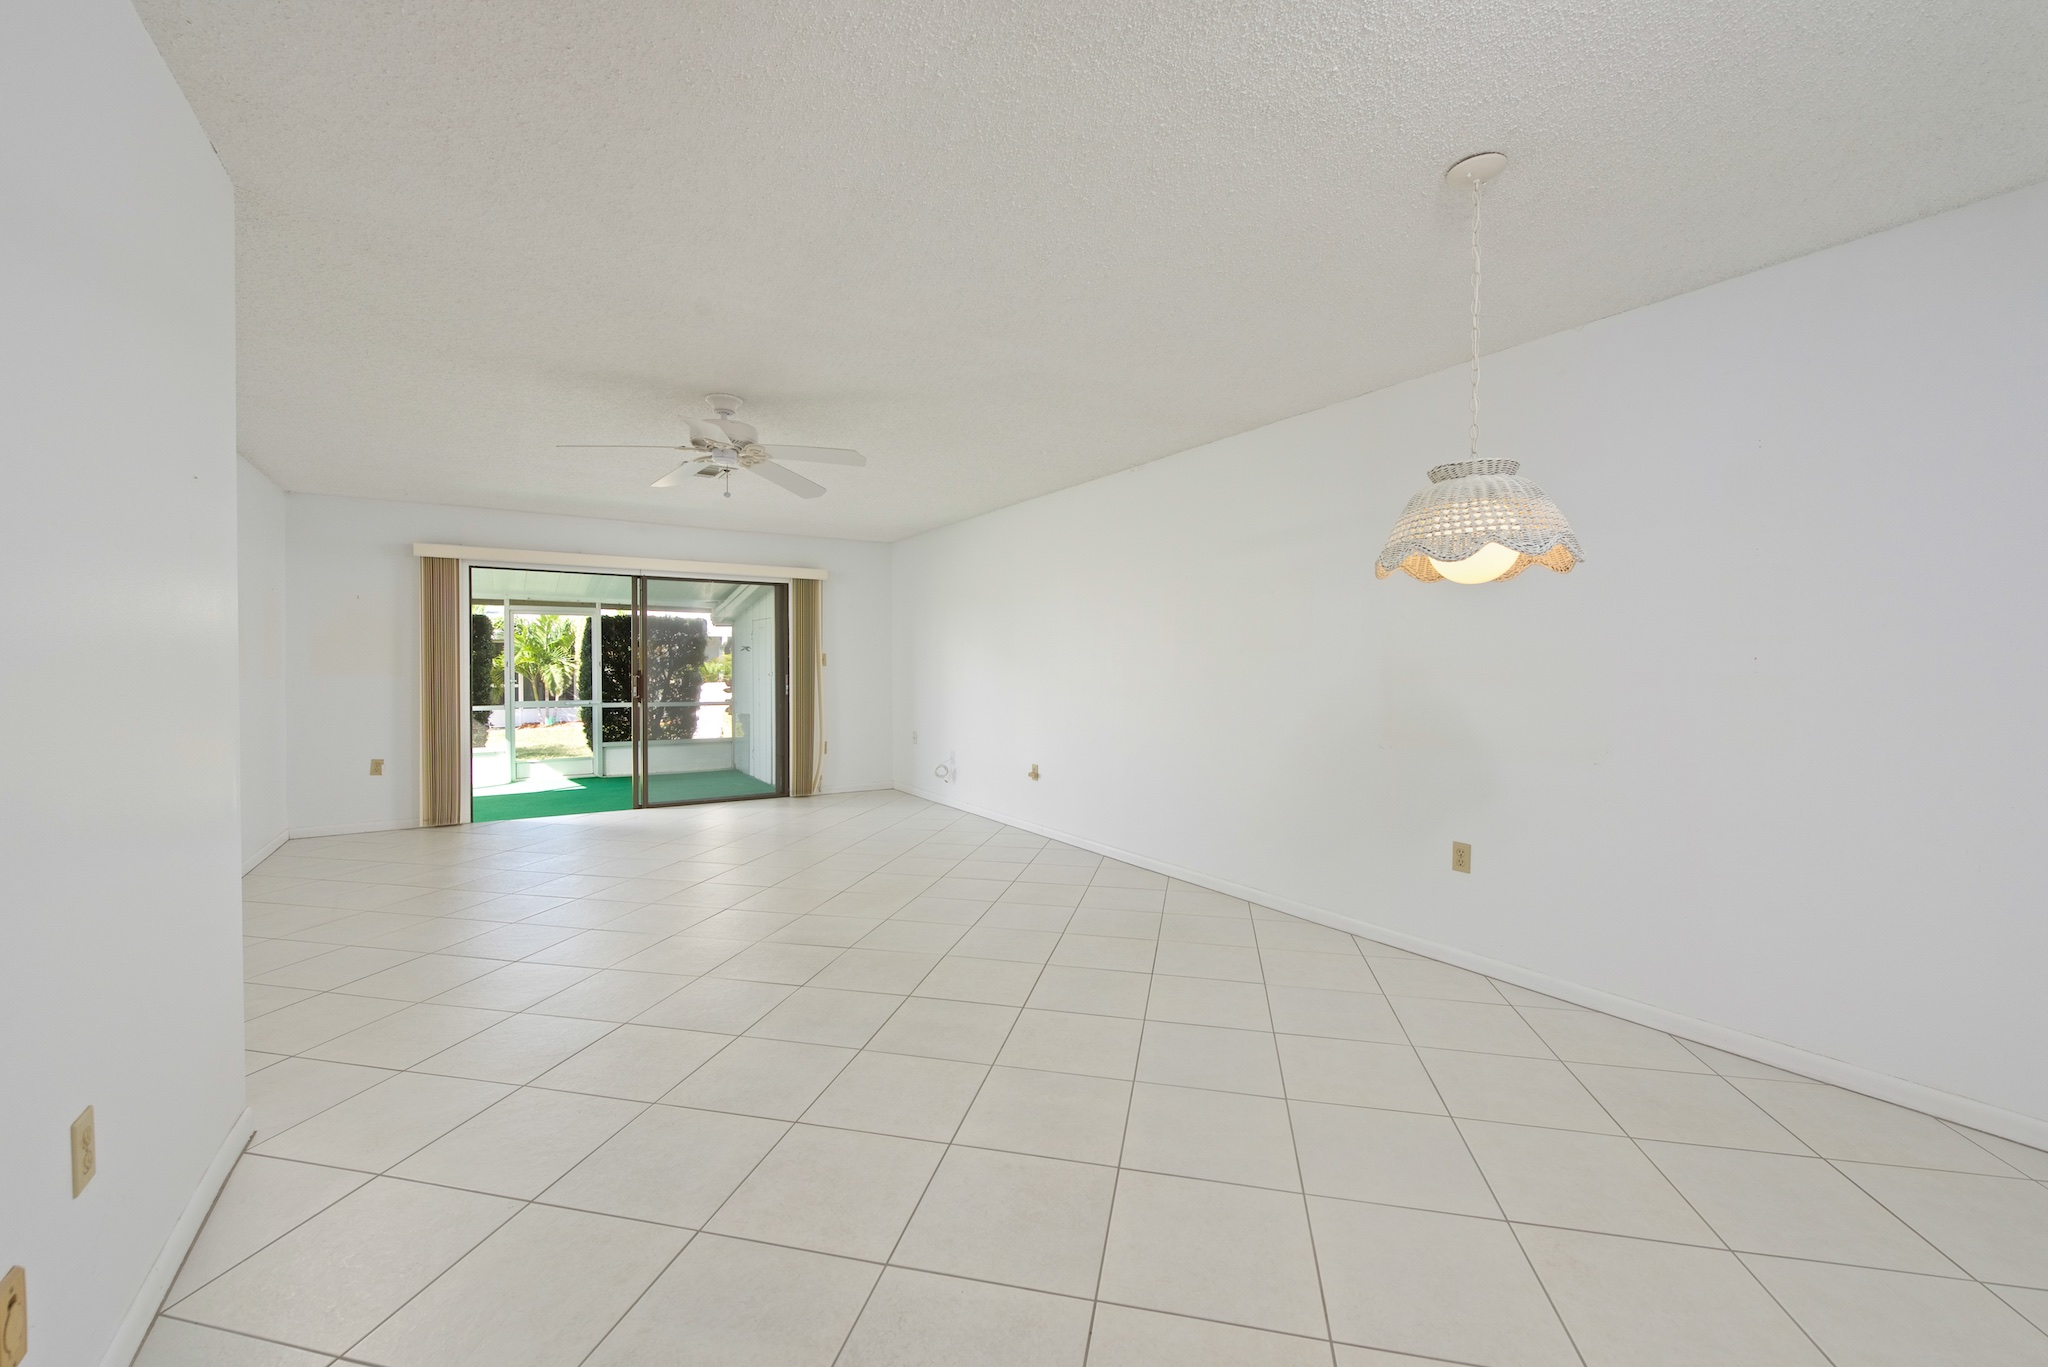 170 Palmetto Ave #22-4 Indialantic, Florida. Townhouse for sale by Brent Burns. 2 bedroom villa close to the beach.